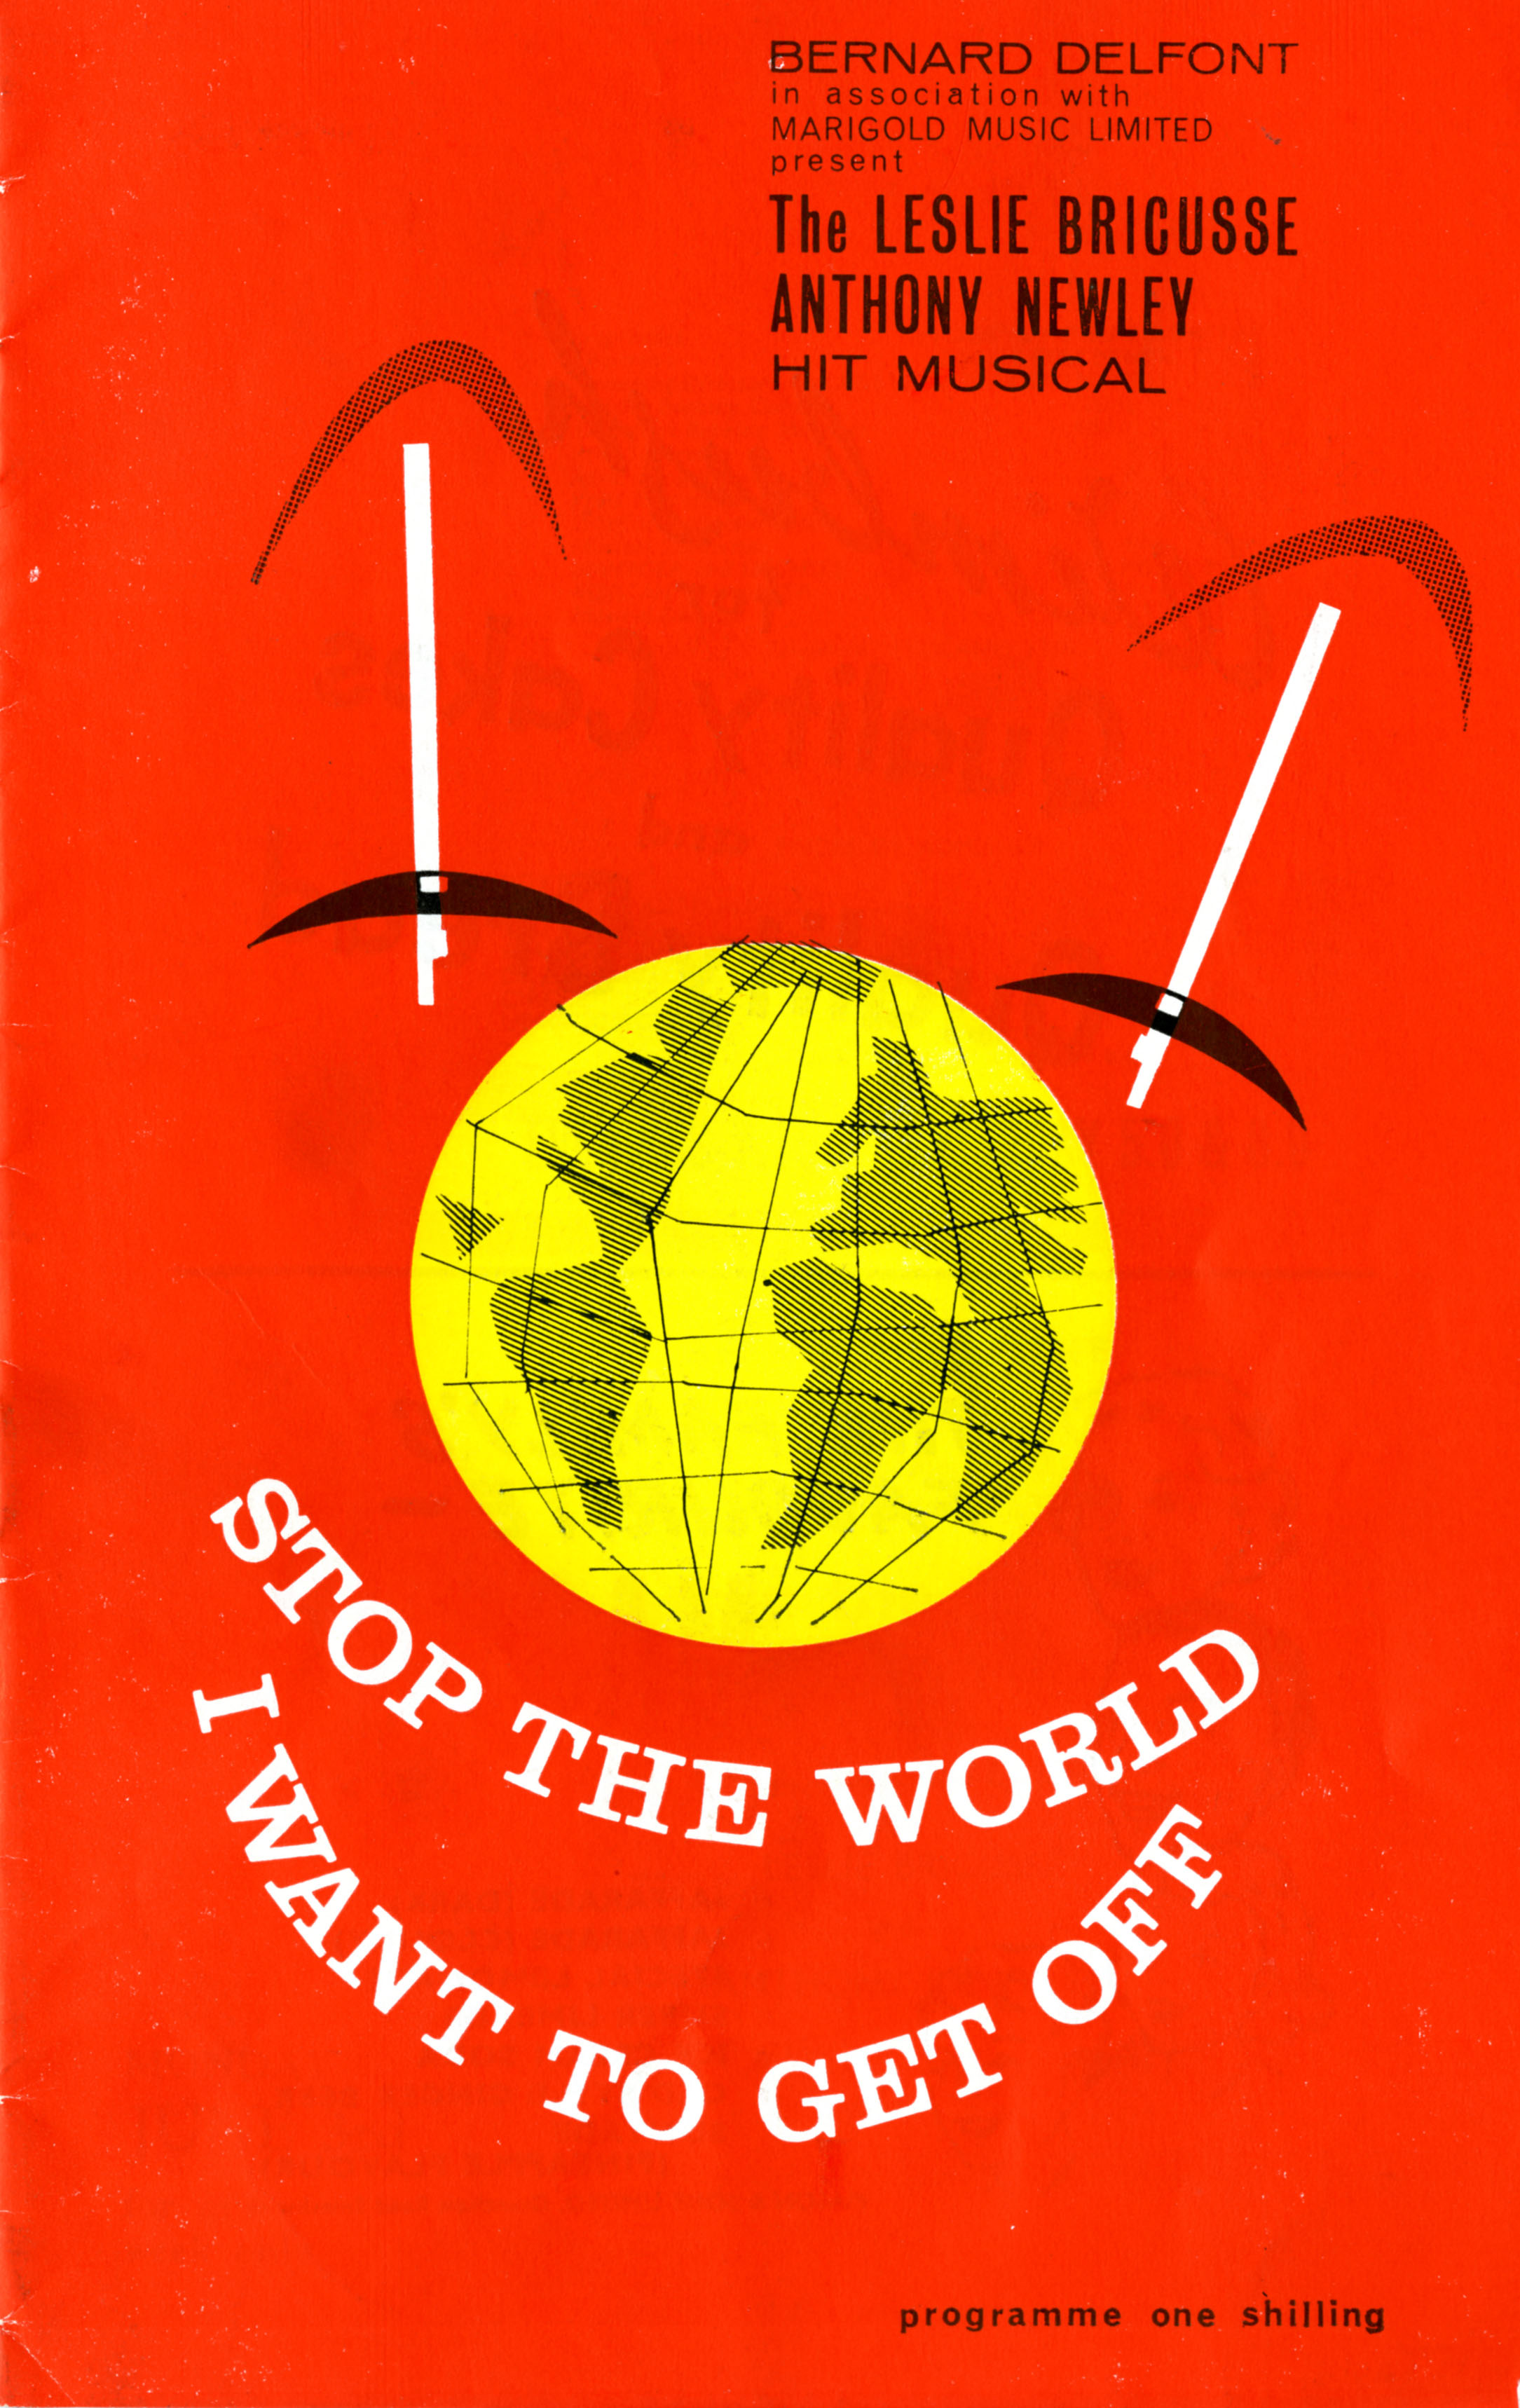 Programme for Stop the world I want to get off, June 1963